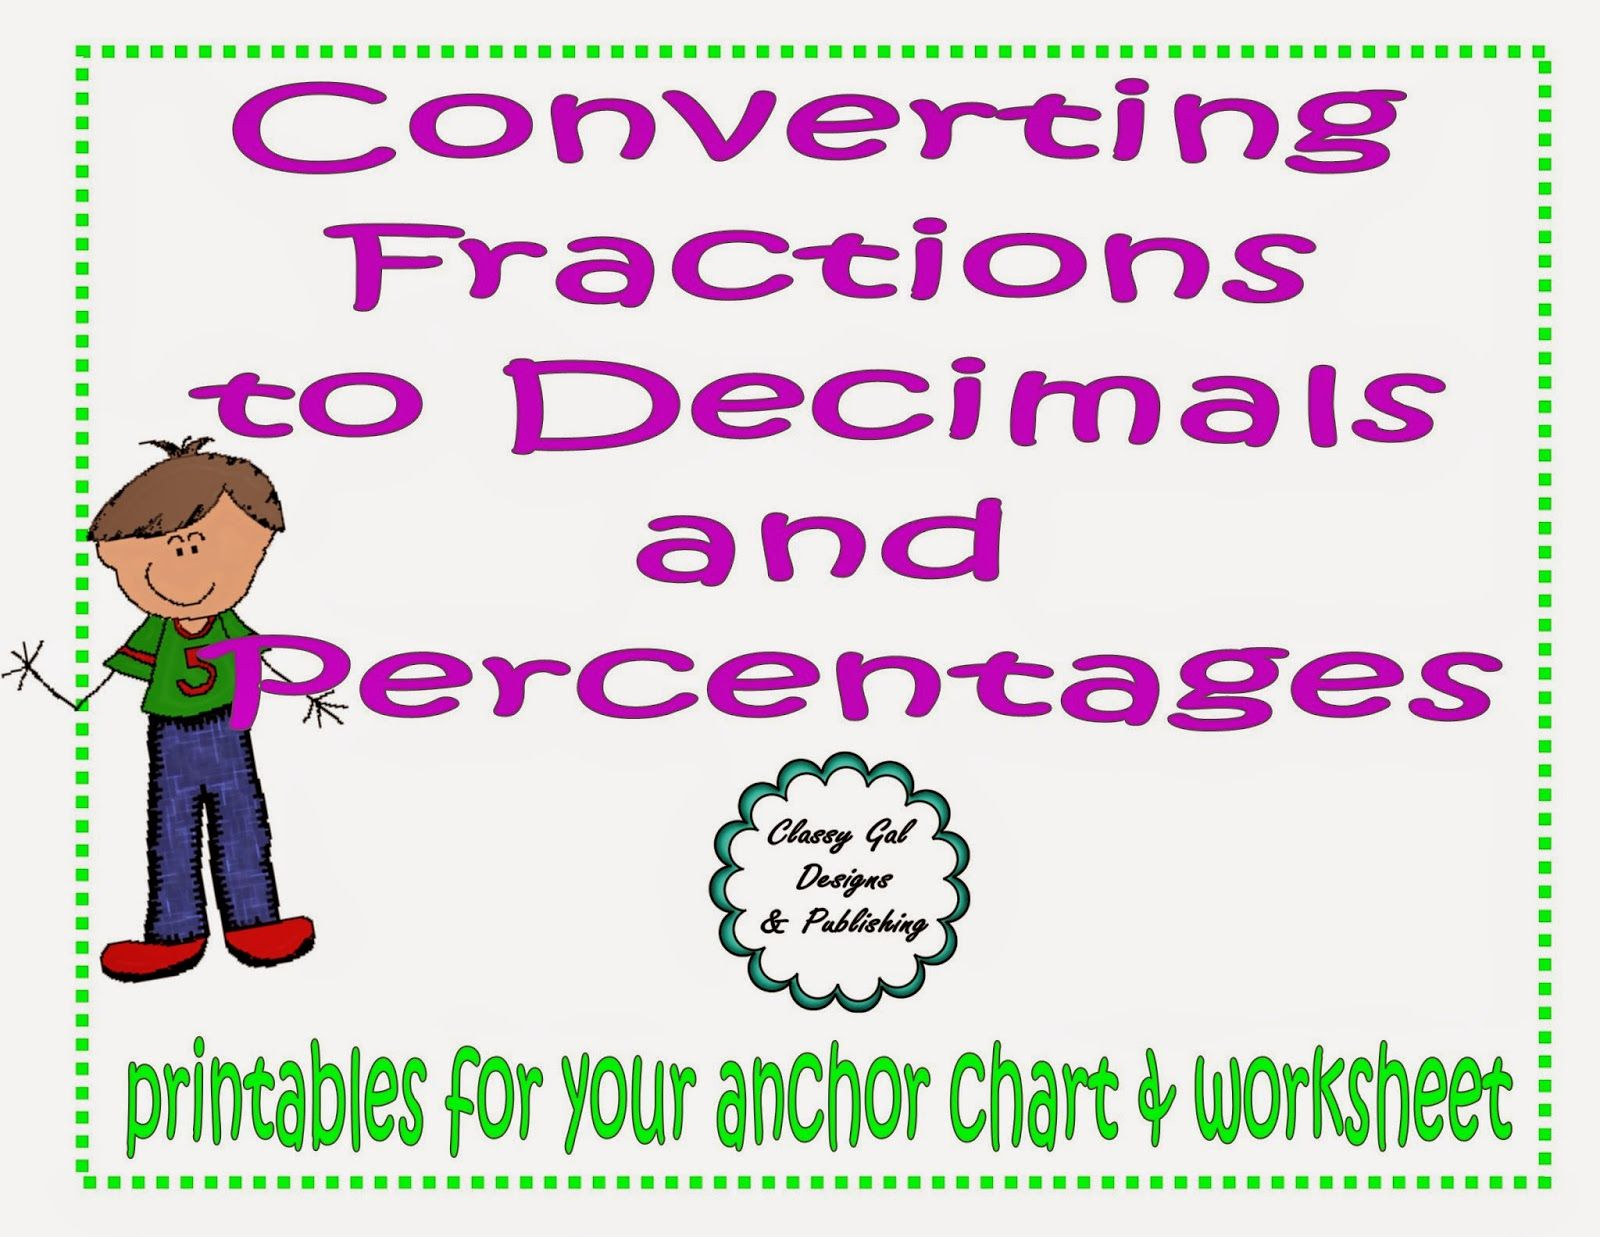 Printable anchor chart converting fractions to decimals printable anchor chart converting fractions to decimals percentages this is my favorite 100th day nvjuhfo Images